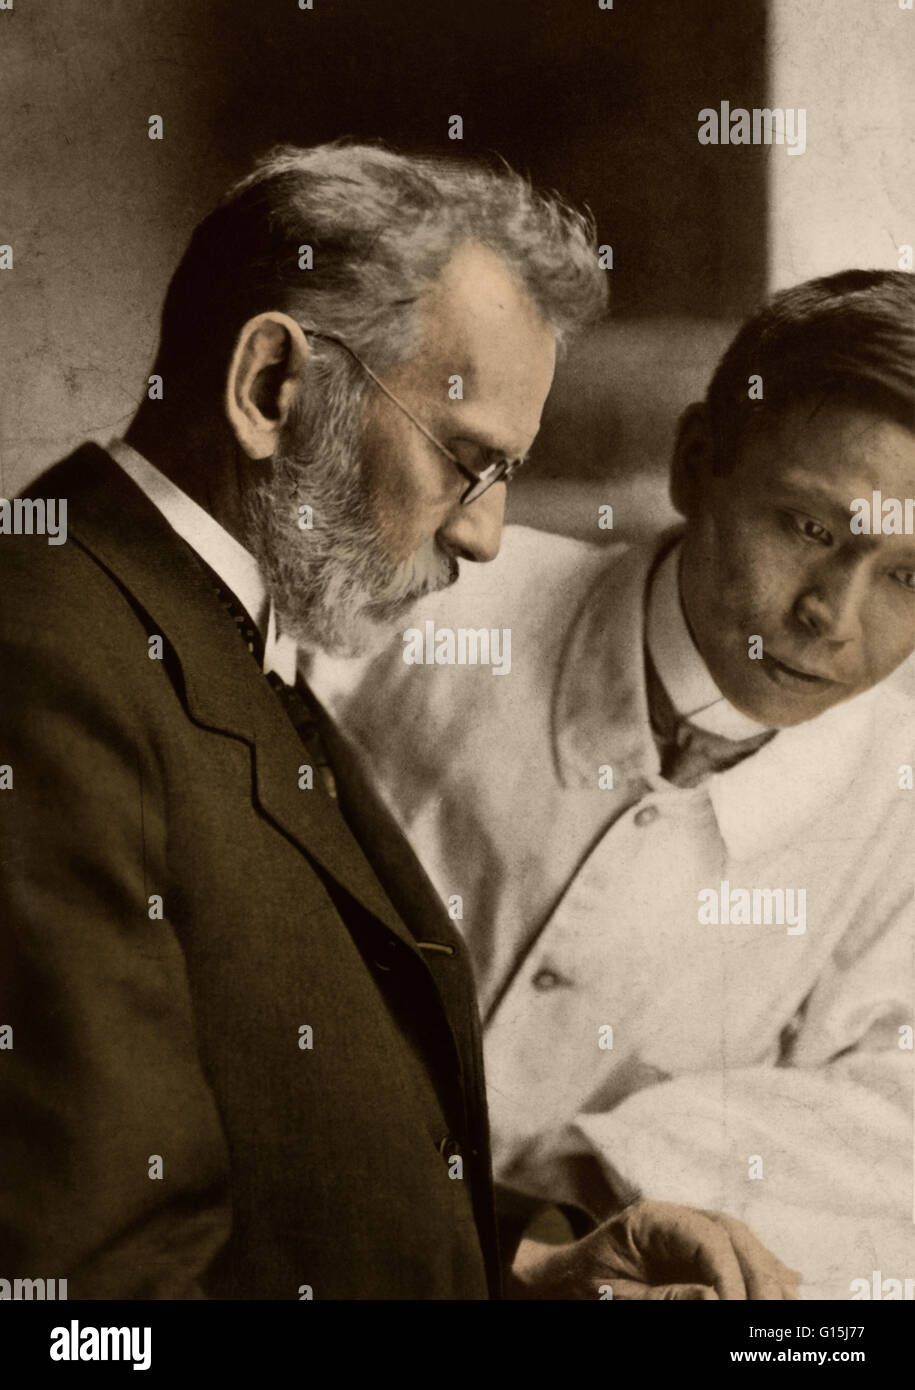 Portrait of Paul Ehrlich (1854-1915) and Sahachiro Hata (1873-1938), the bacteriologists from Germany and Japan - Stock Image